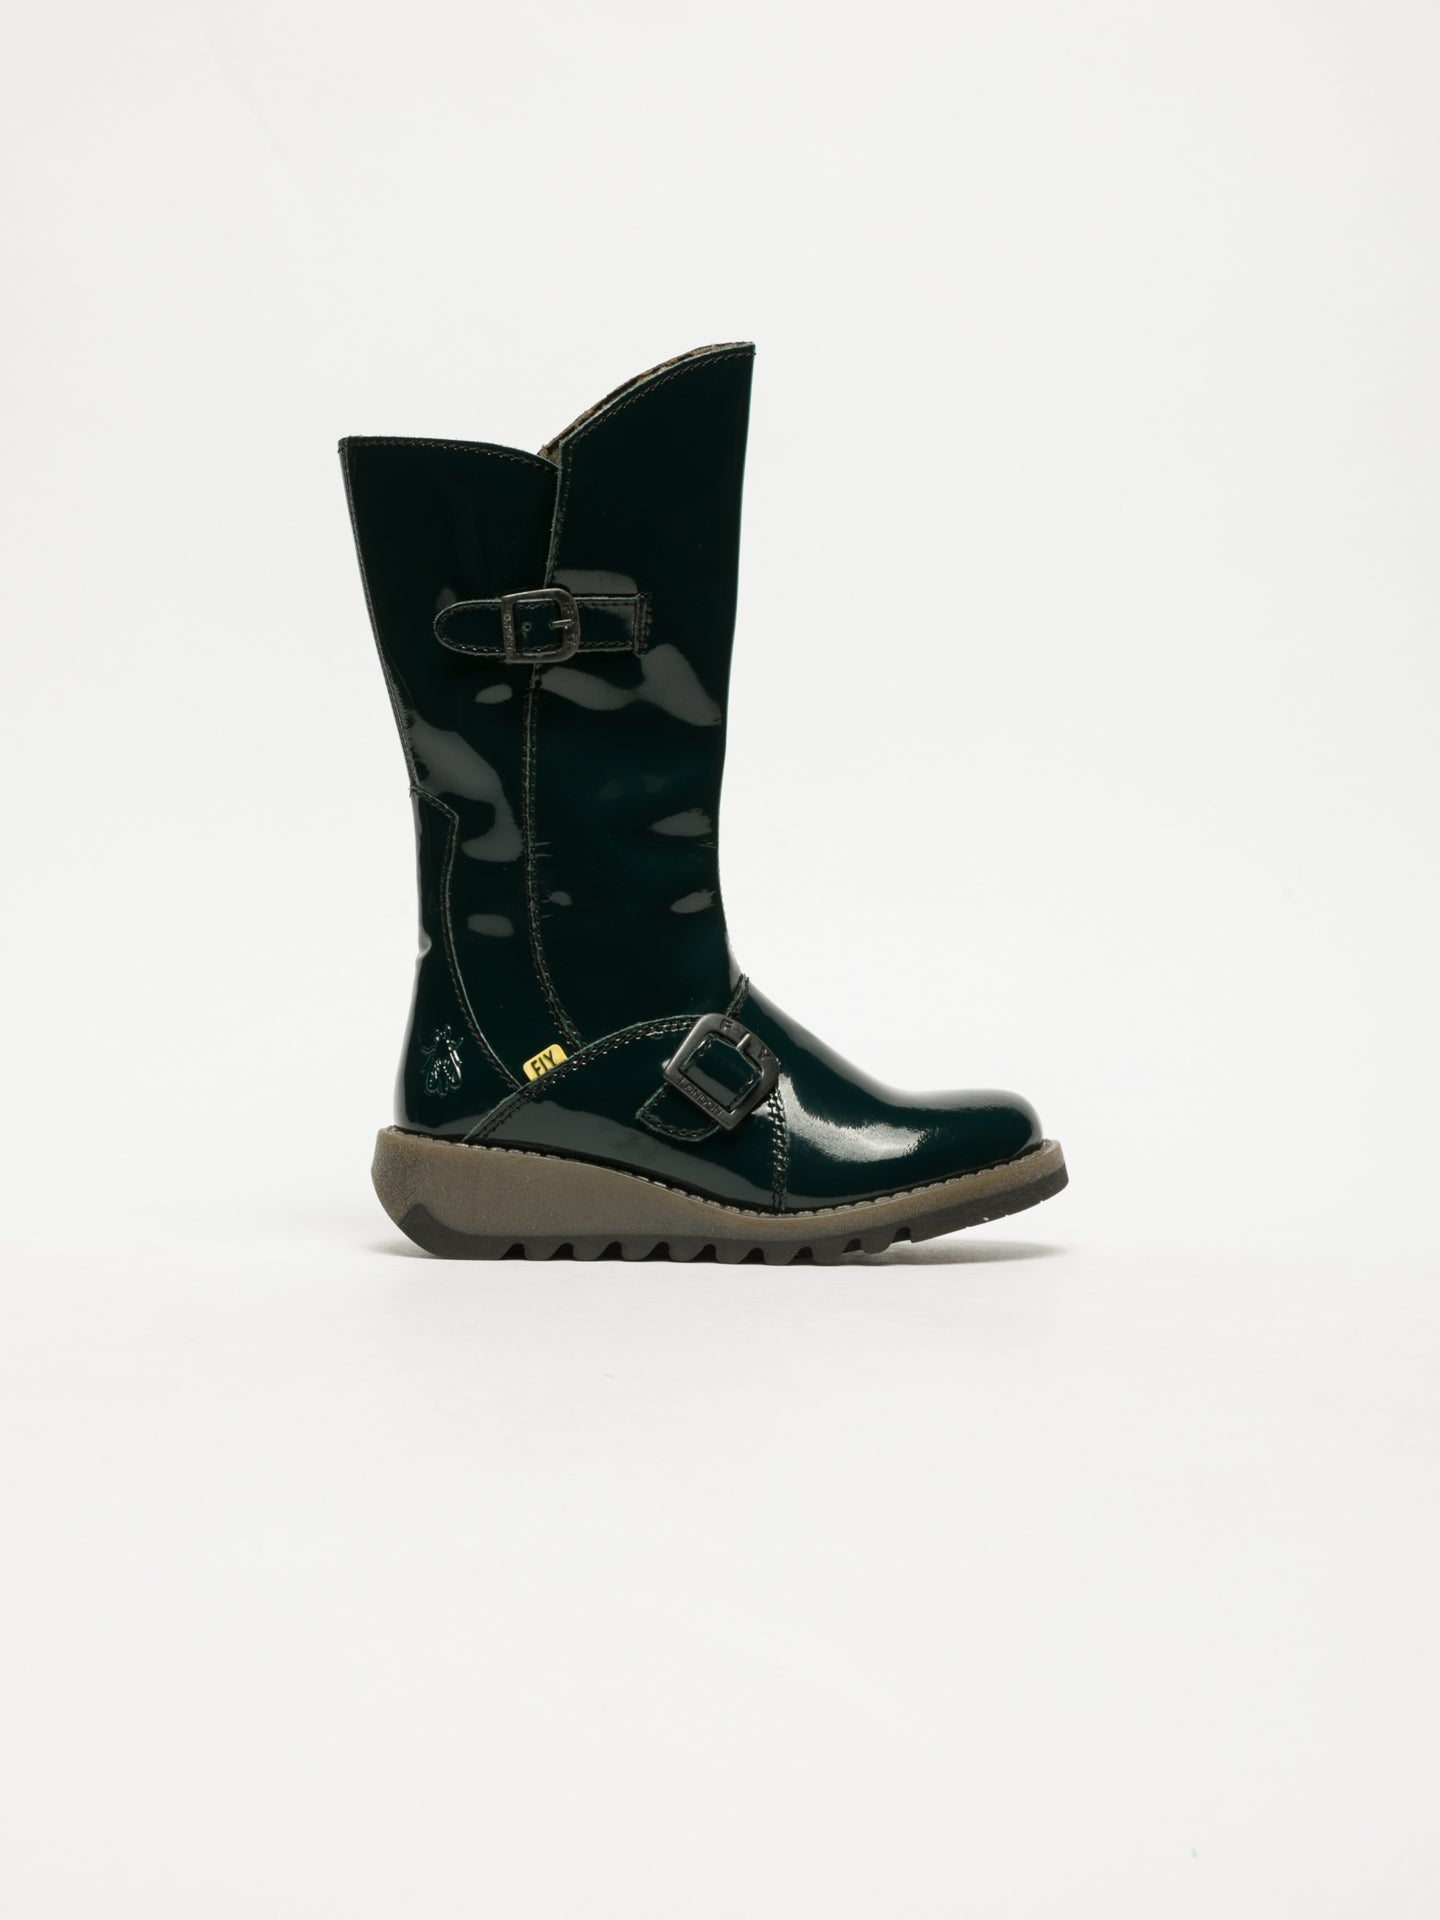 Fly London DarkGreen Buckle Boots